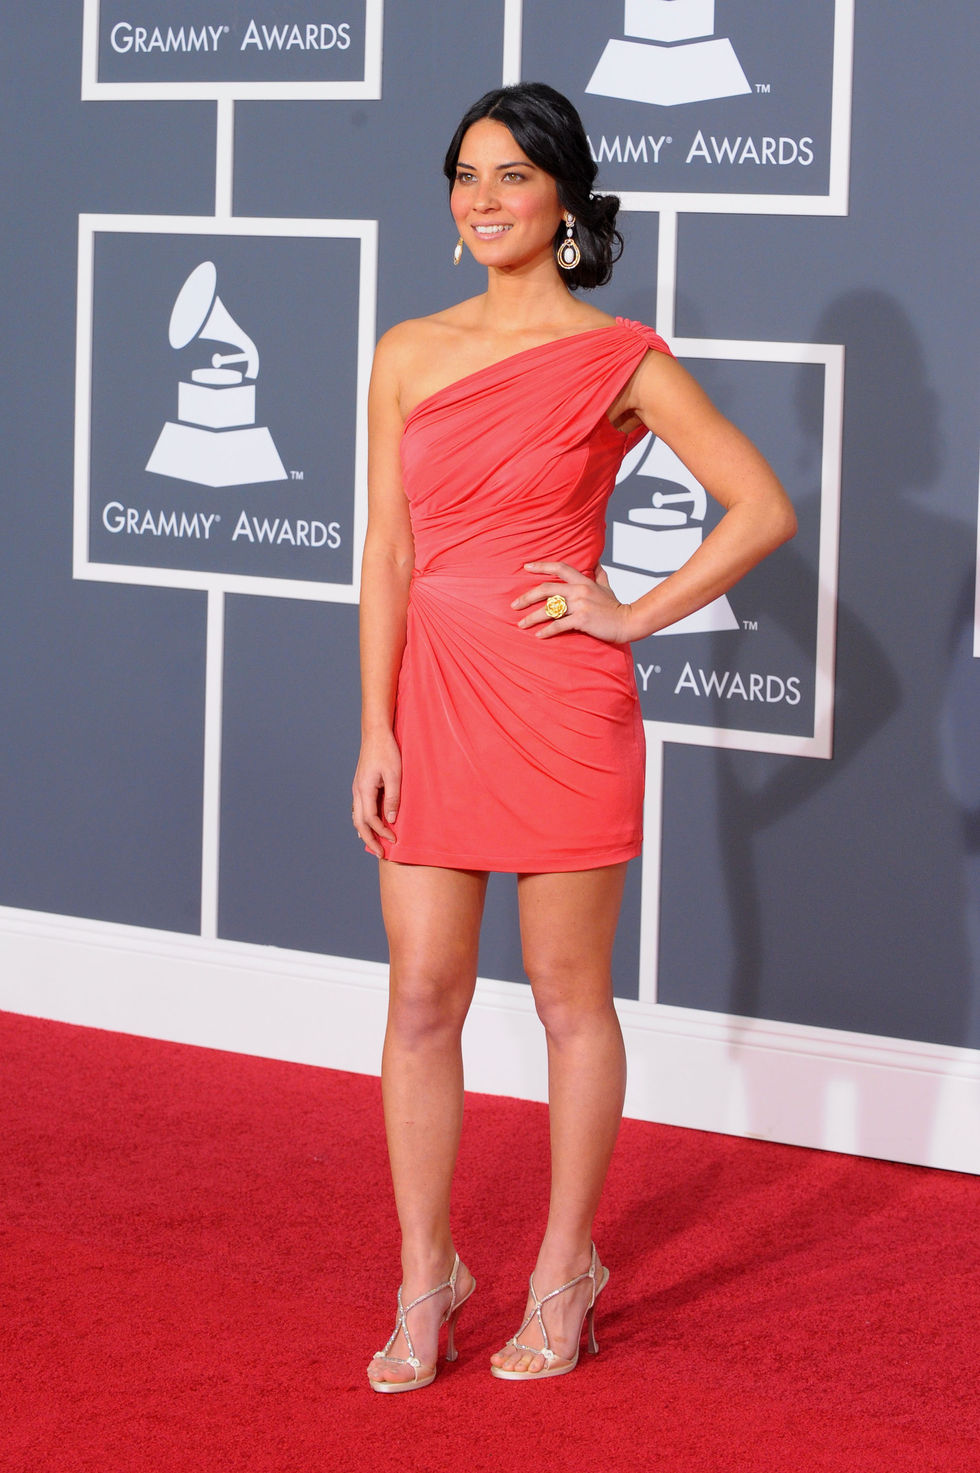 olivia-munn-52nd-annual-grammy-awards-in-los-angeles-02